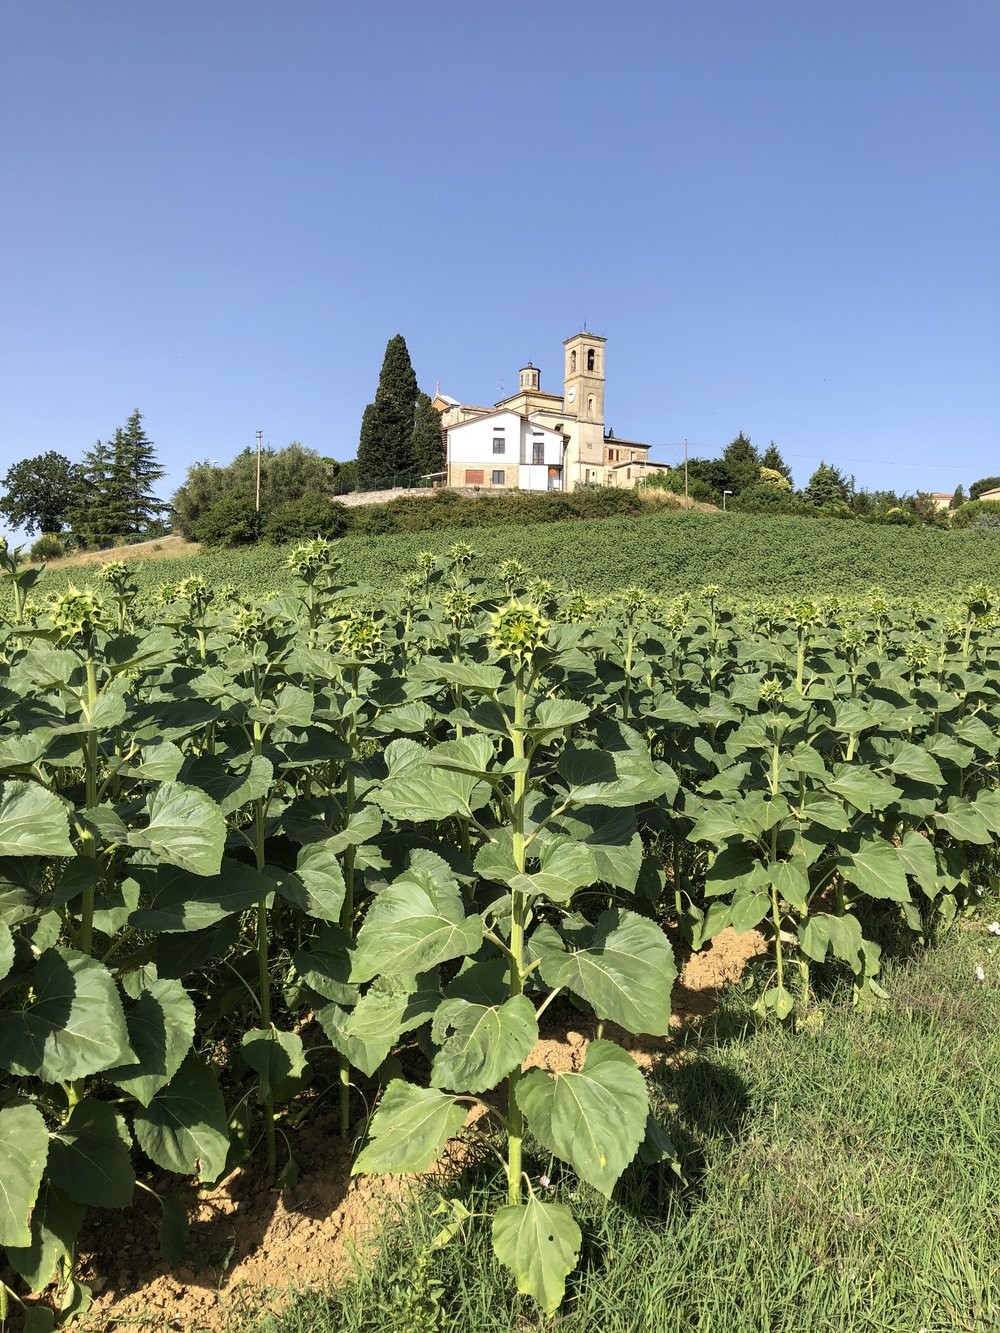 Sunflower field below church, Colombella, Umbria, Italy. Monday morning, July 2nd